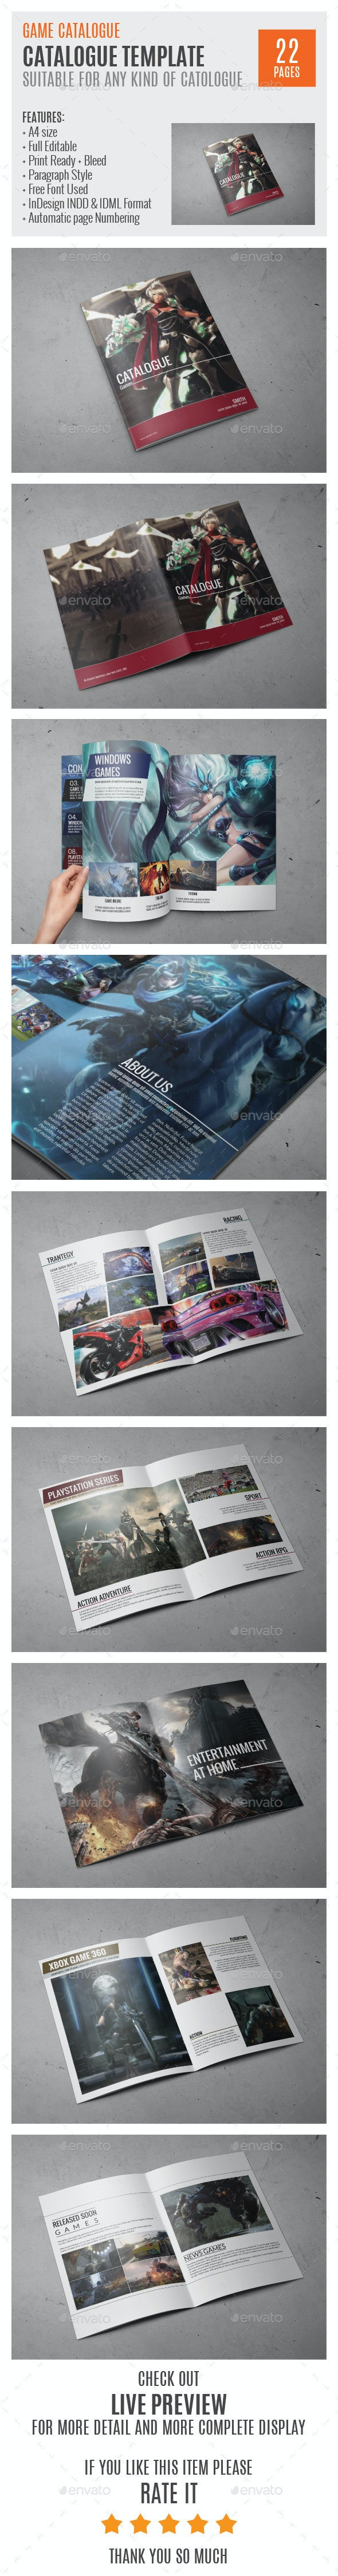 Game Studio A4 InDesign Catalog Template 0005 - Catalogs Brochures